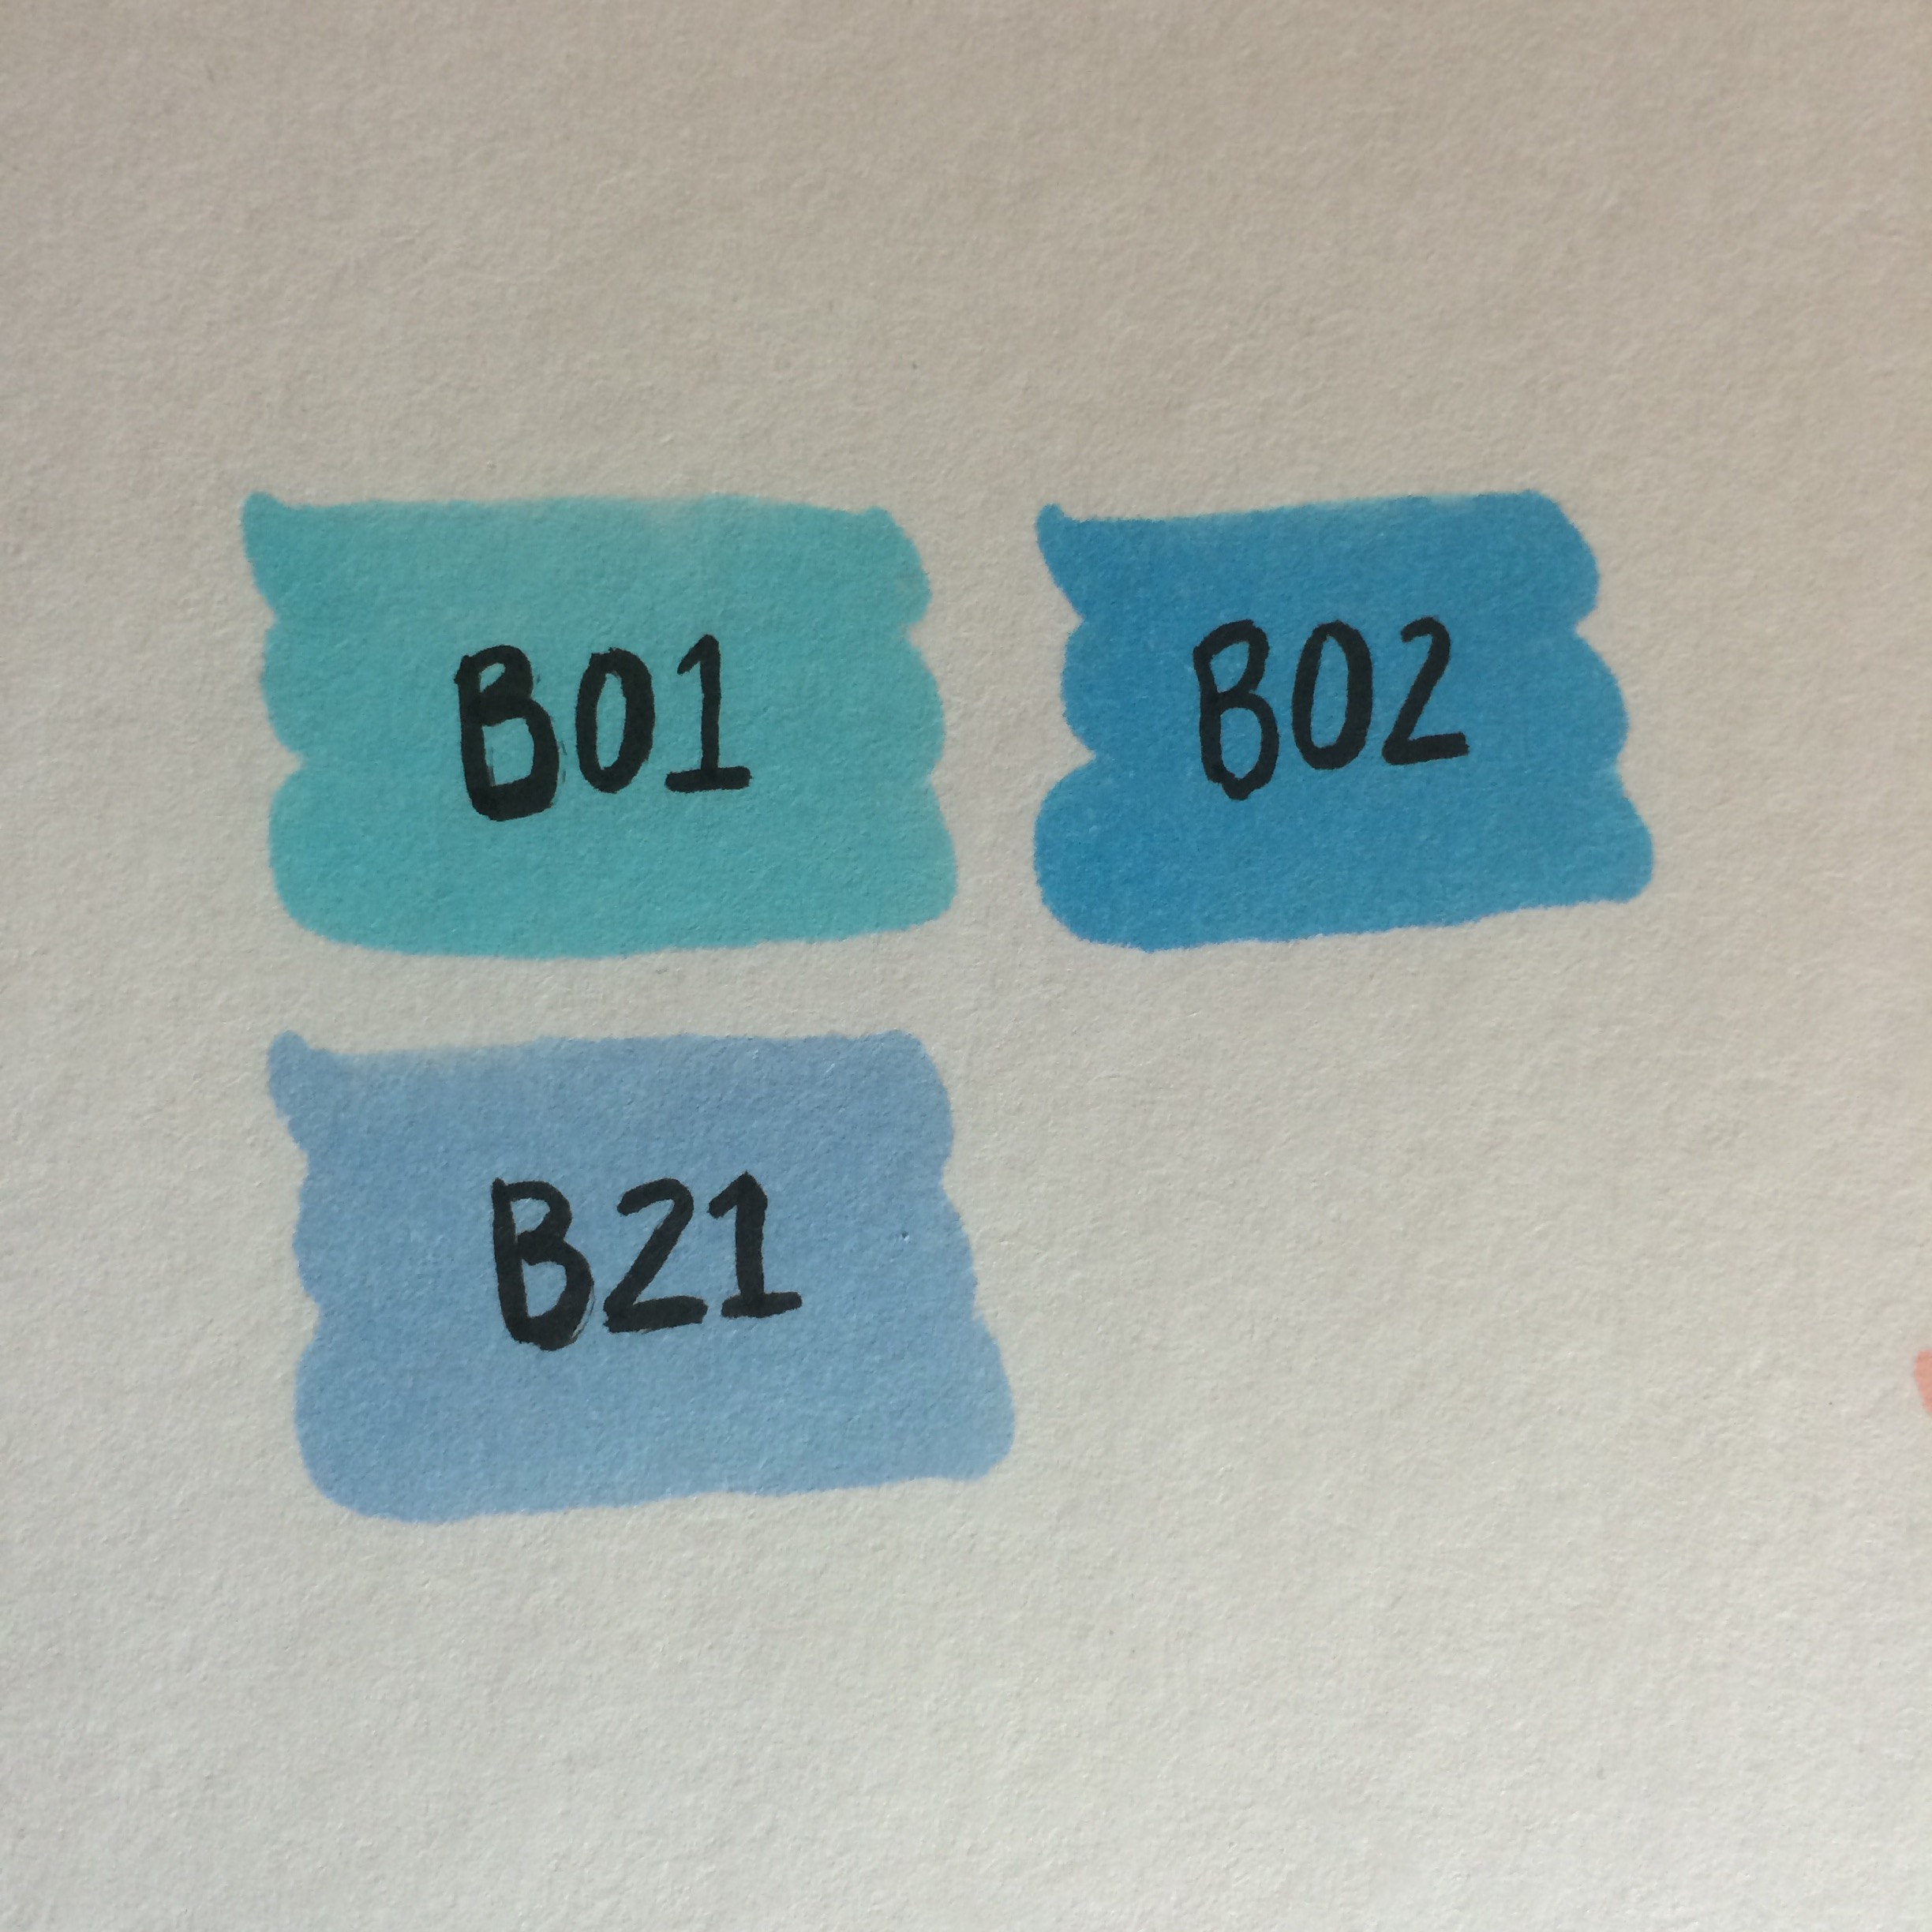 Copic colors B01, B02, and B21